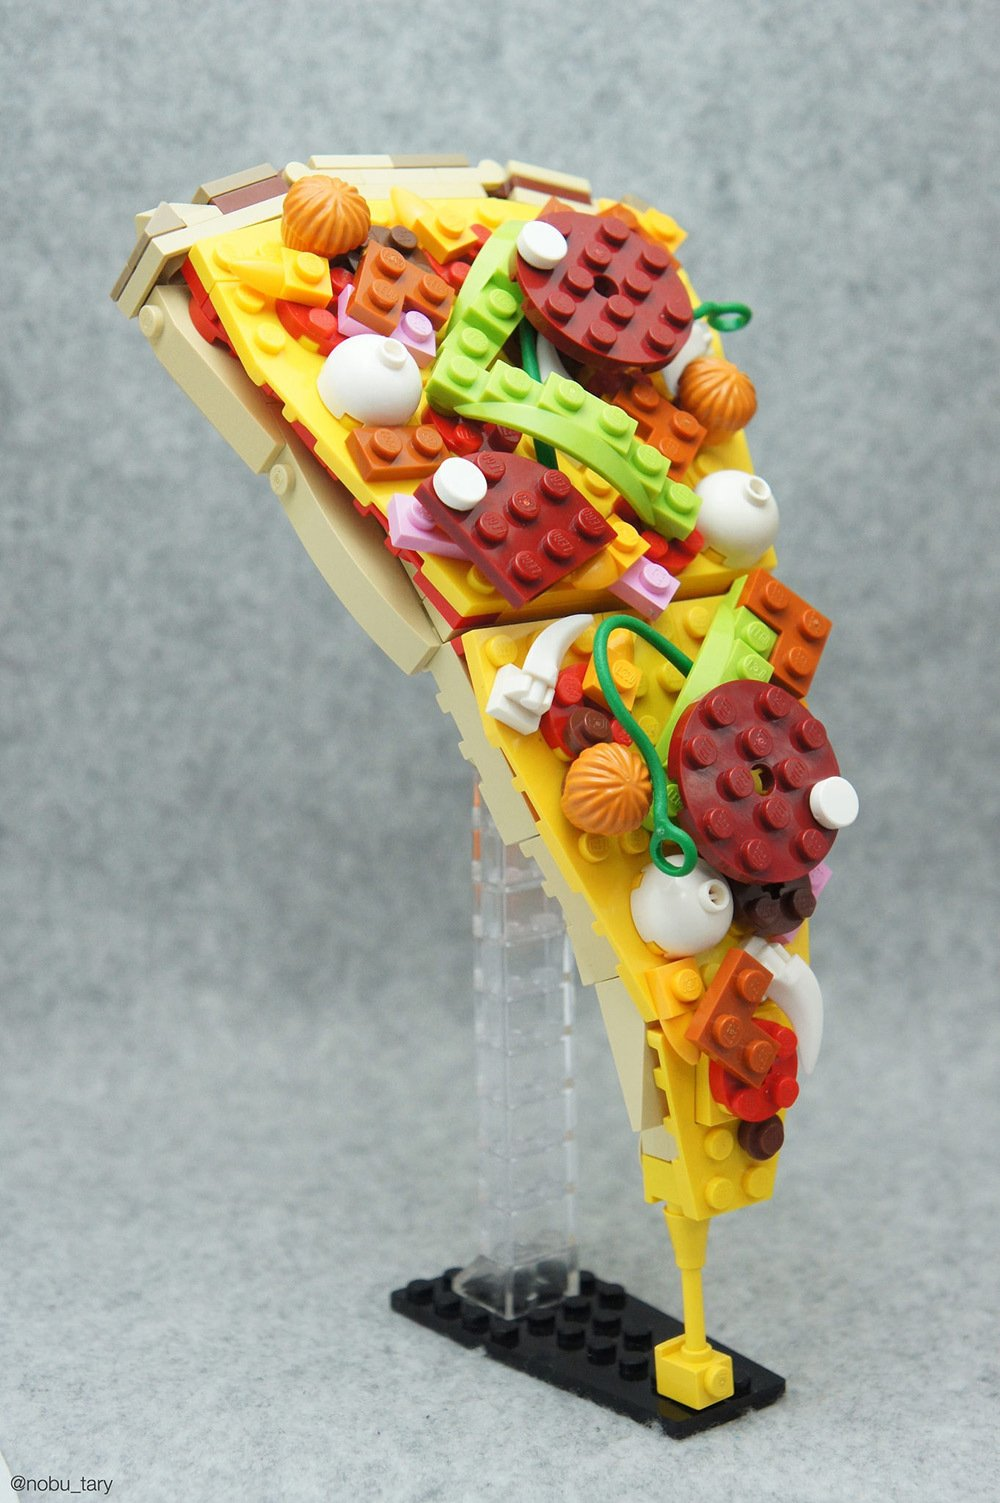 Japanese Lego creator Tary sculpts delicious-looking collections of food made entirely from Lego blocks. https://t.co/xlAnJQQLyt